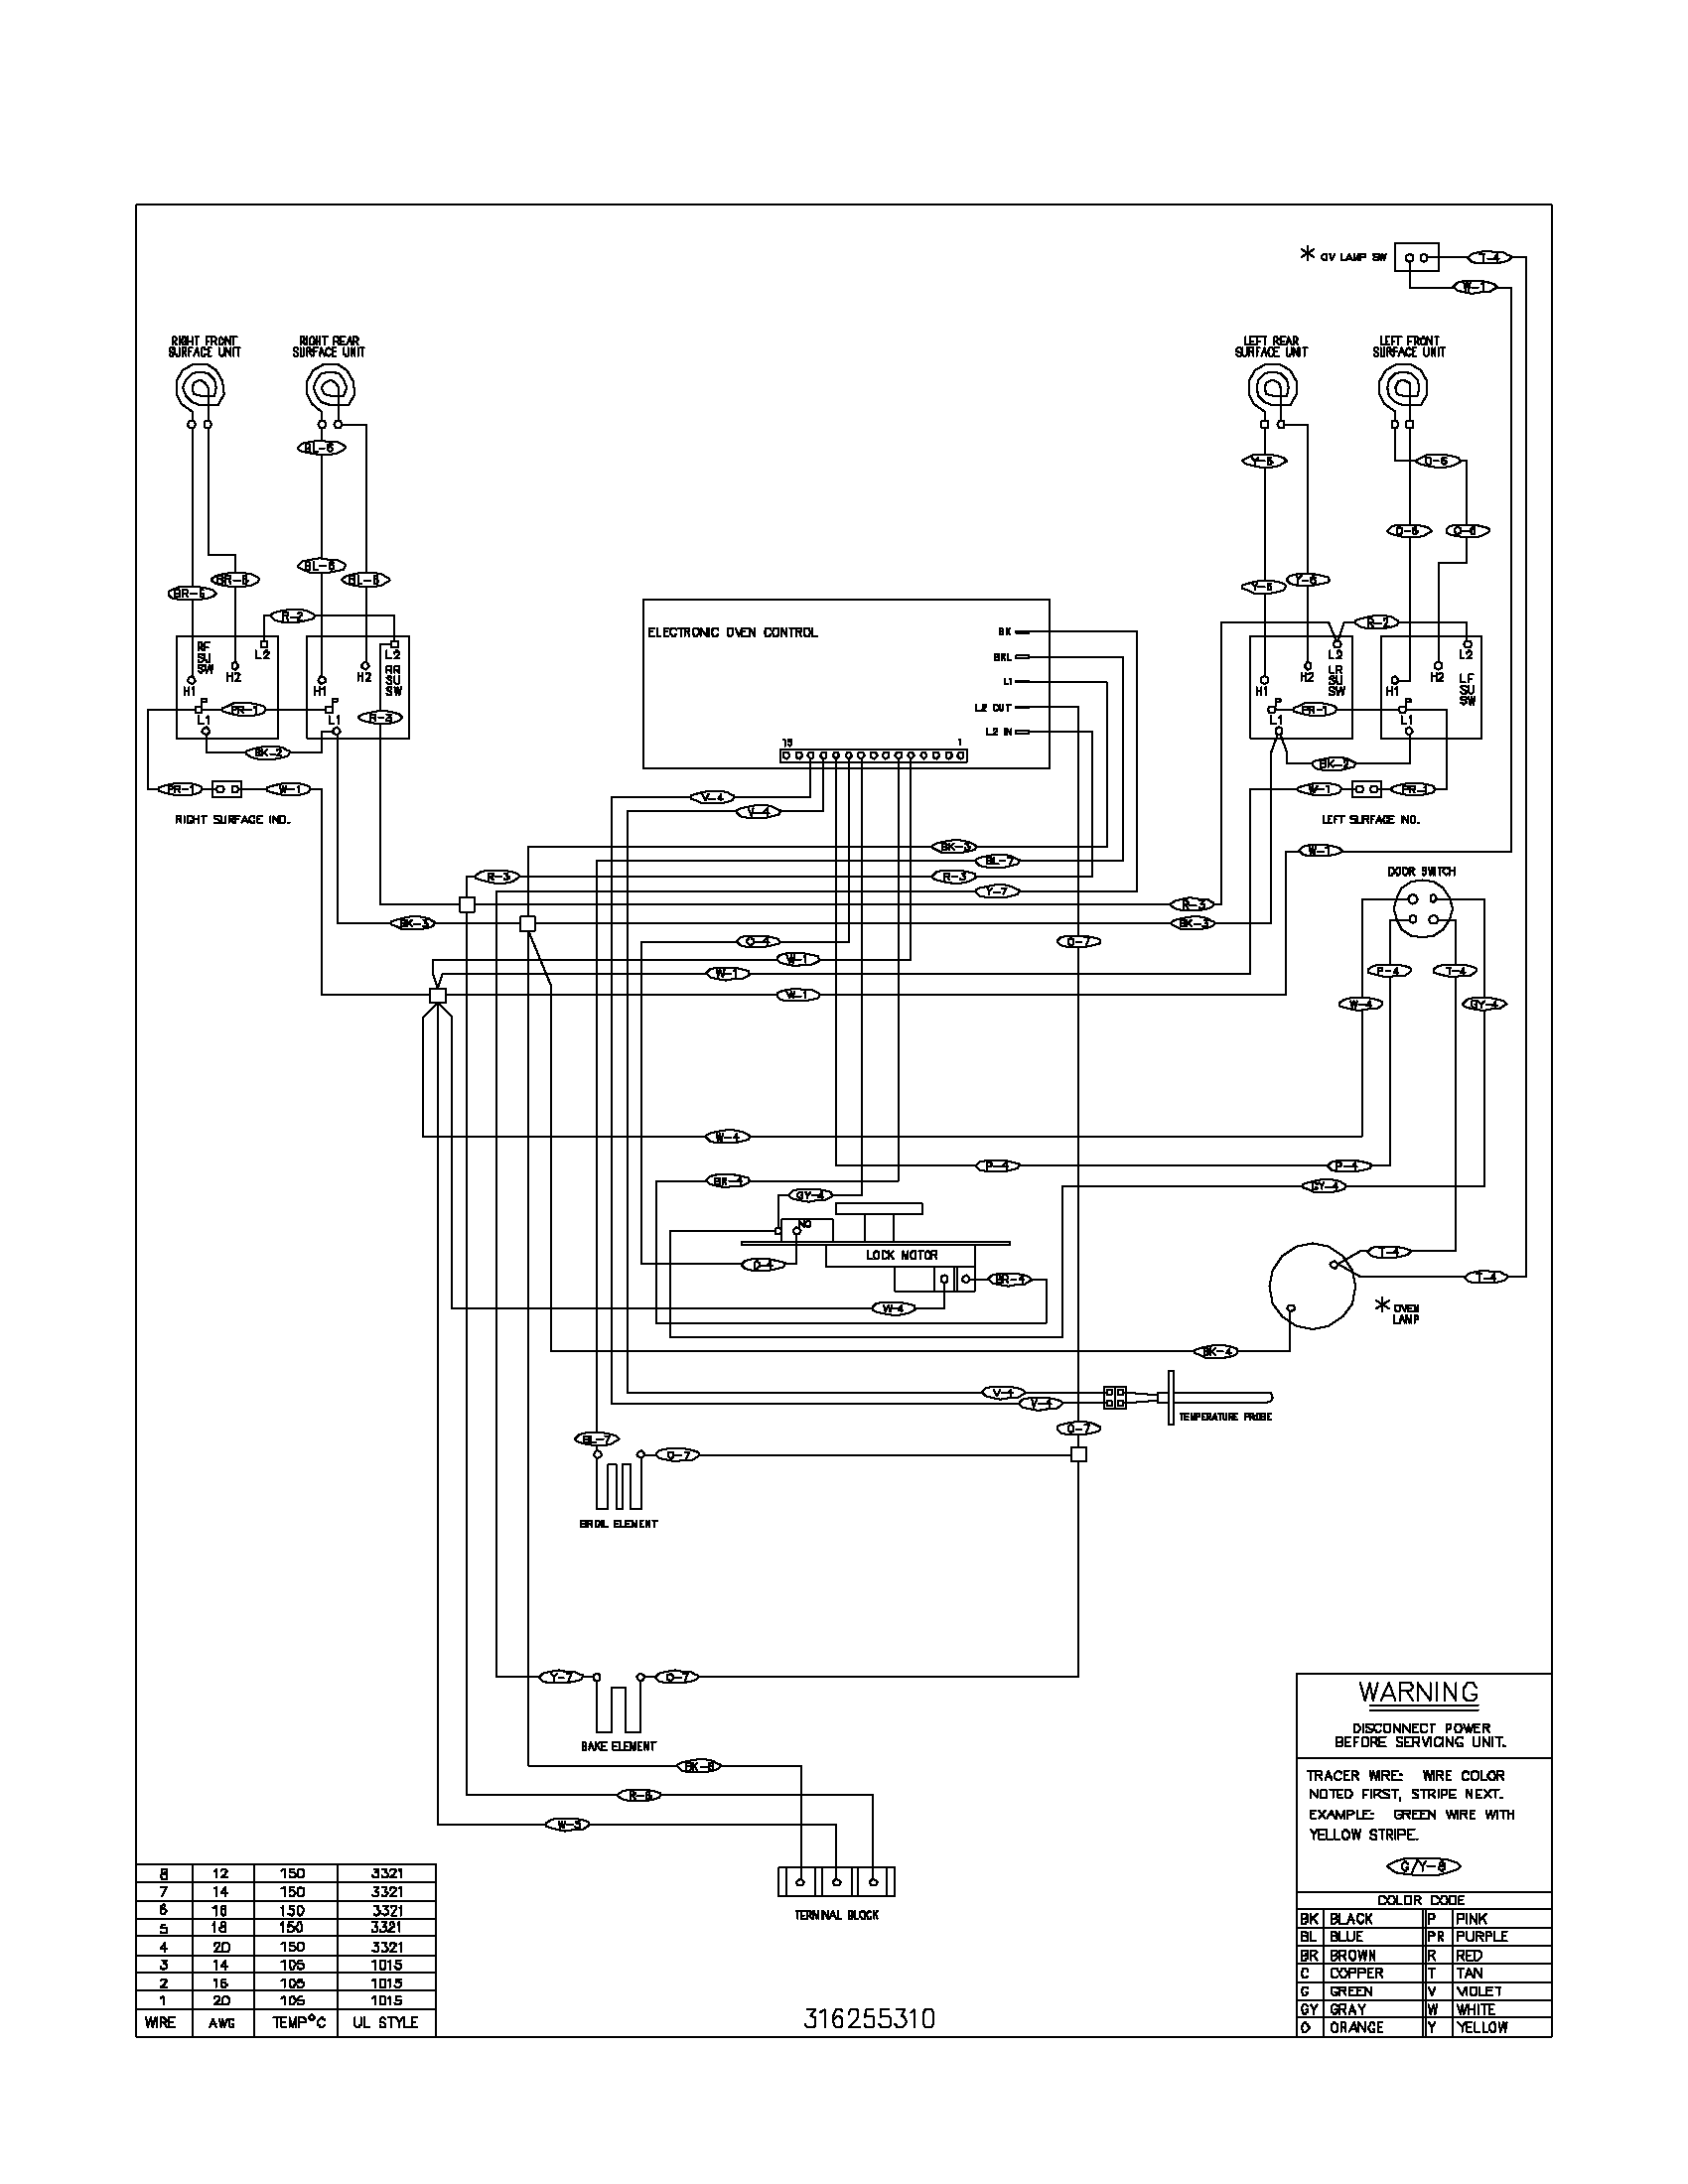 Diagram Stove Wiring Ge Js9685 K6ss Completed Diagrams Jenn Air Top